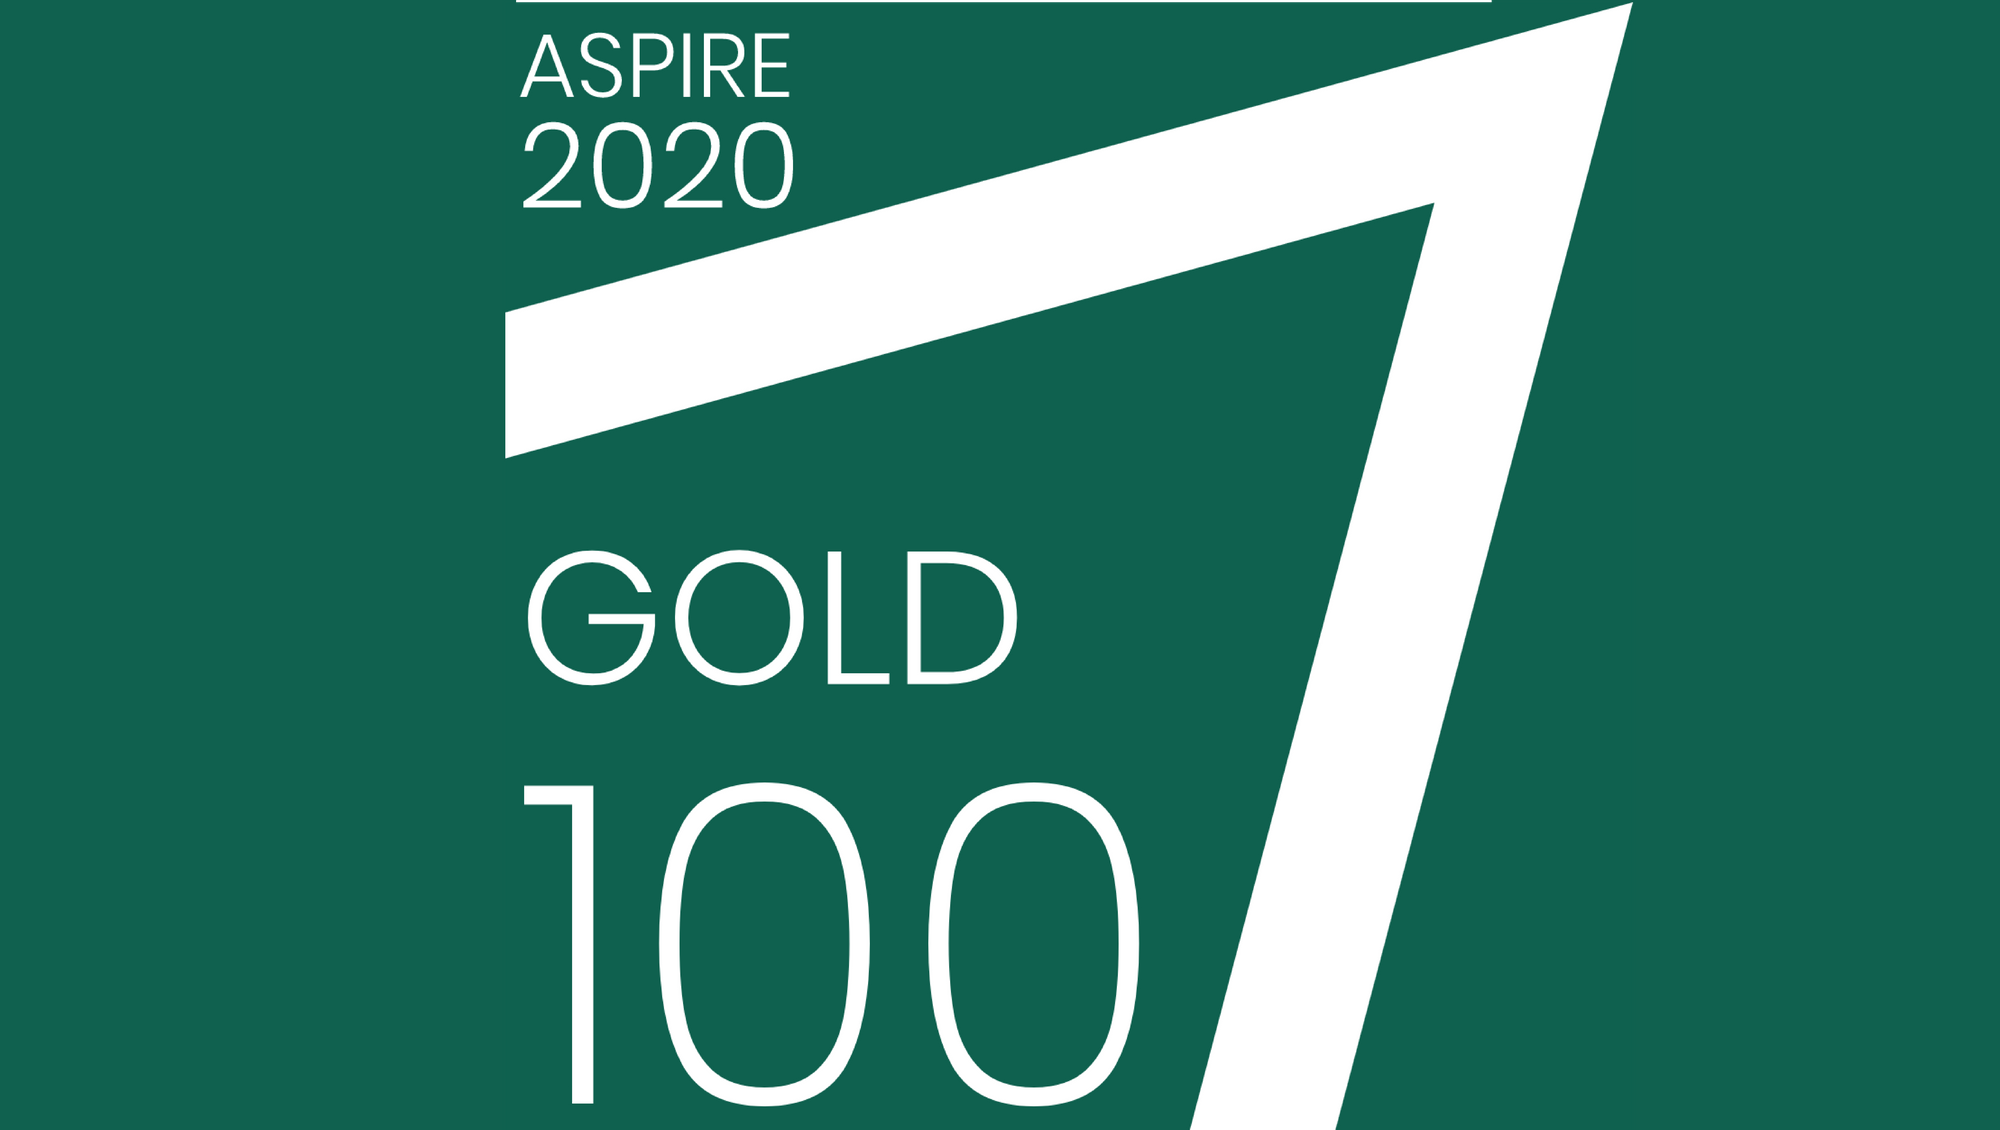 BibliU Receives Perfect 100% ASPIRE Score for Accessibility